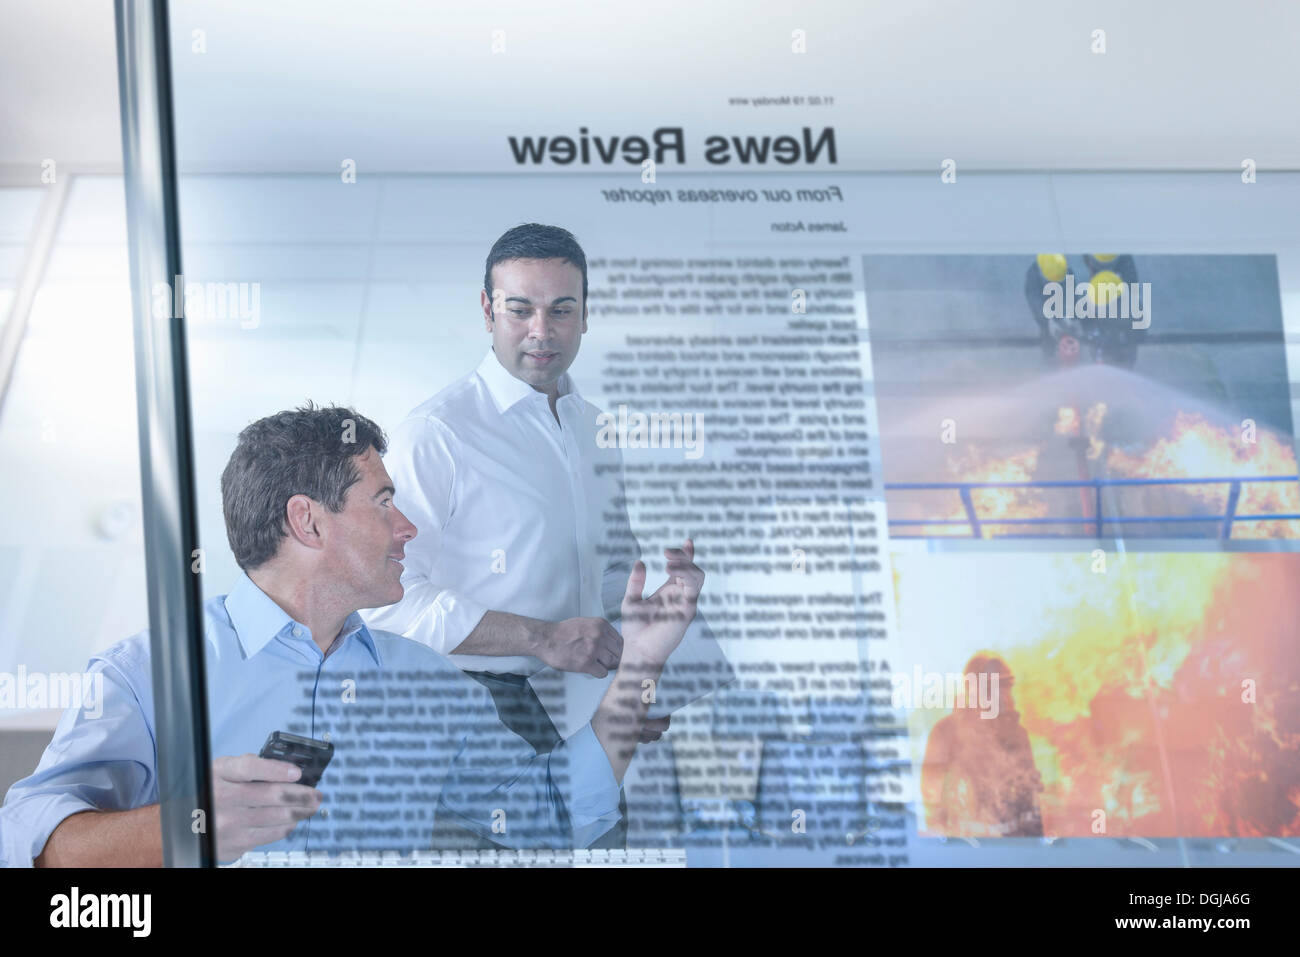 Journalist and blogger discussing news, view through screen - Stock Image